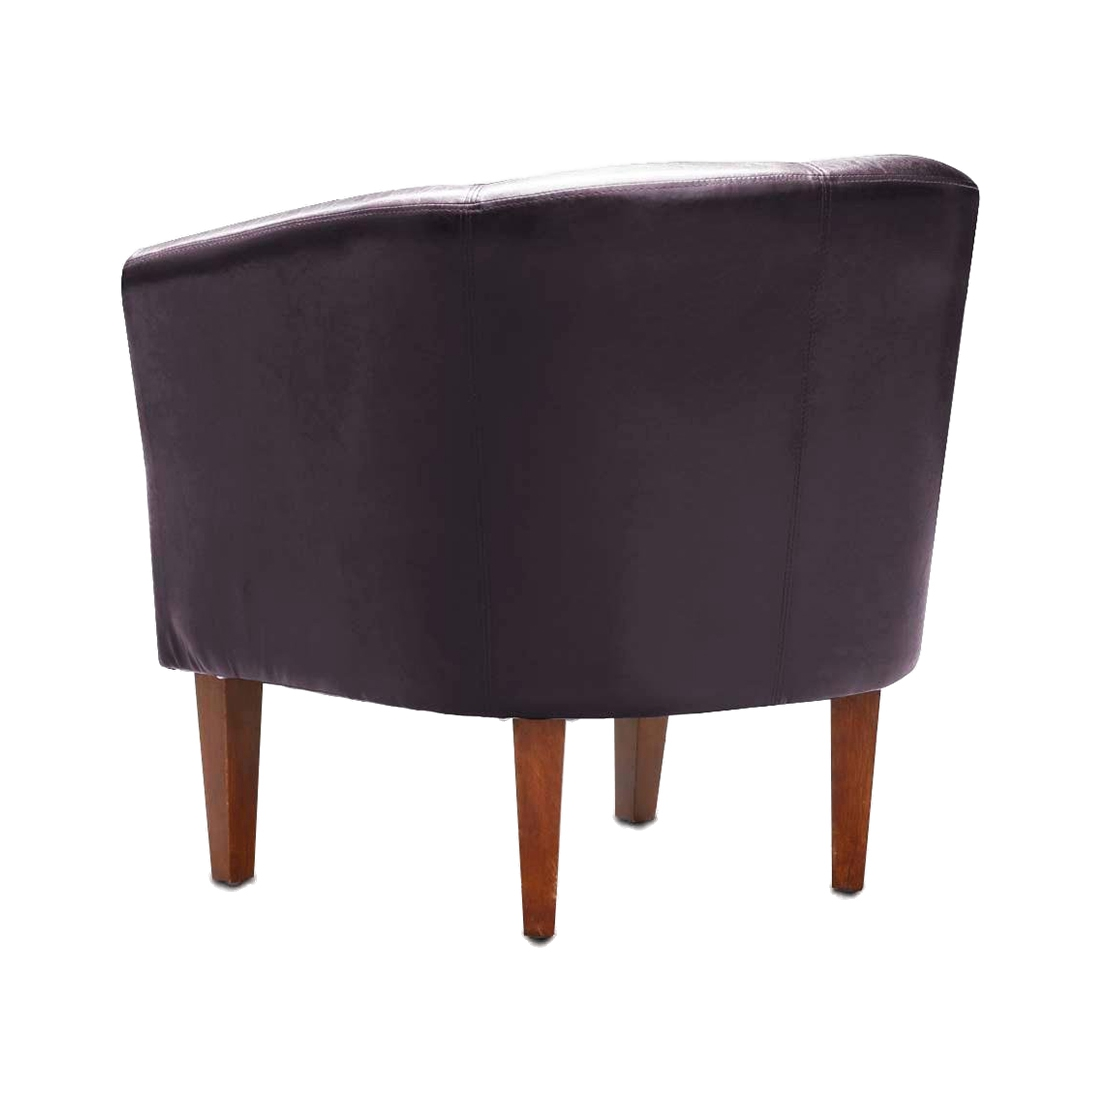 leather tub chair counter high table and chairs armchair for dining living room office